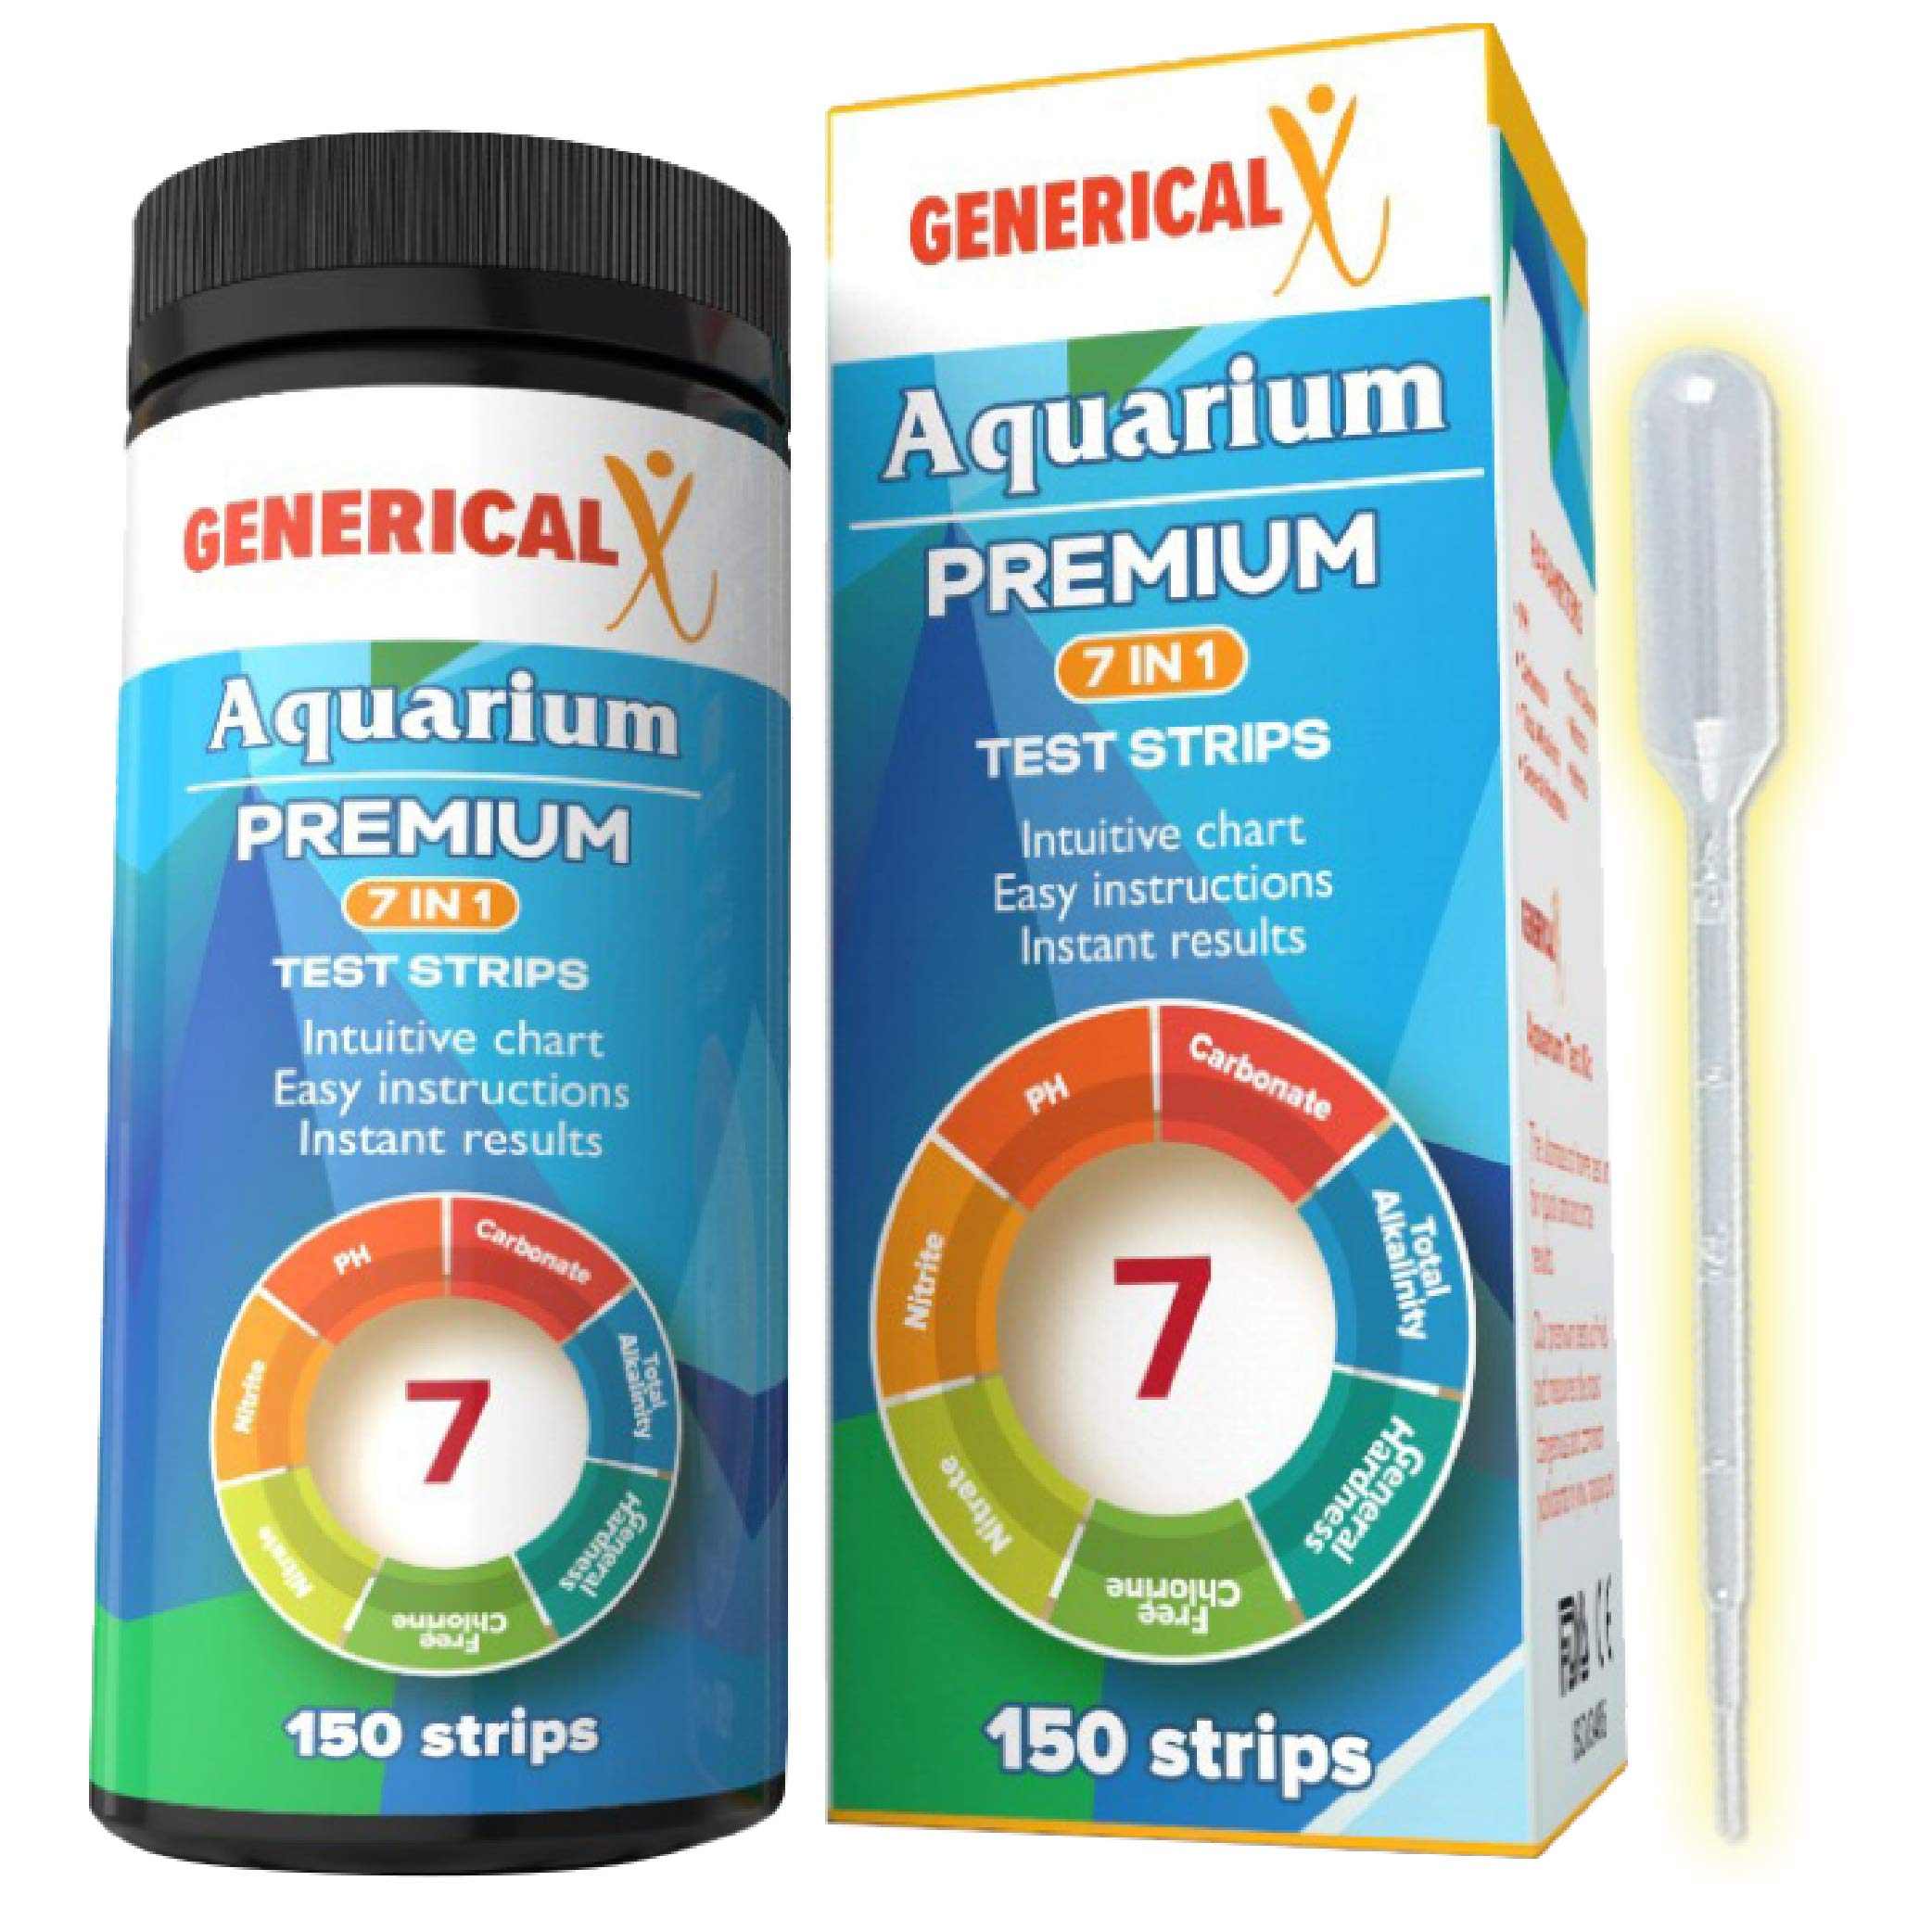 Aquarium Test Strips Kit 7 Parameter (FDA Approved 150 Strips) for: ✓Nitrite ✓pH ✓Free Chlorine ✓Carbonate ✓Total Alkalinity ✓General Hardness ✓Nitrate Safe for Freshwater Saltwater or Ponds by Generical X